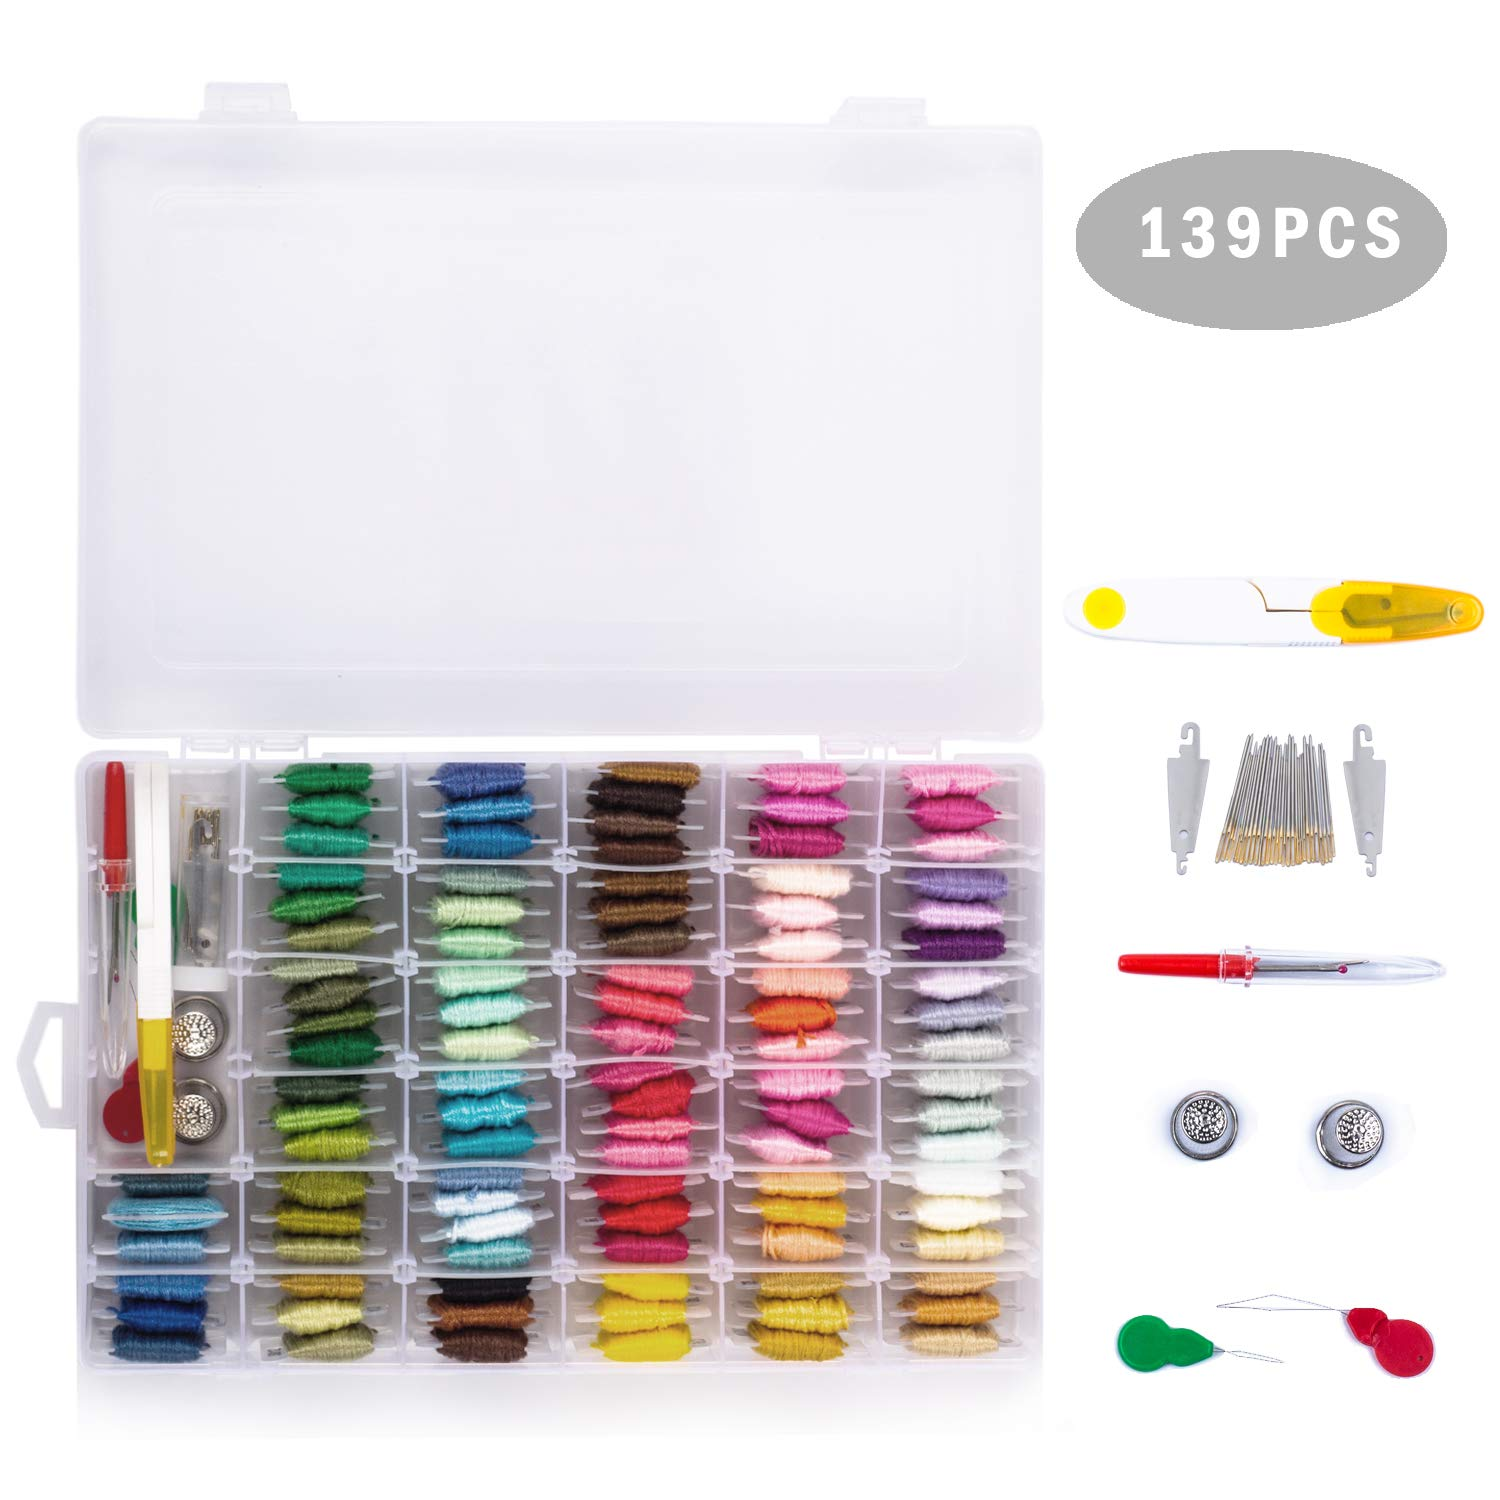 Embroidery Floss 139pcs Embroidery Thread String Kits 100 Skeins Premium Rainbow Floss Bobbins and Cross Stitch Kit with Organizer Storage Box Toopify